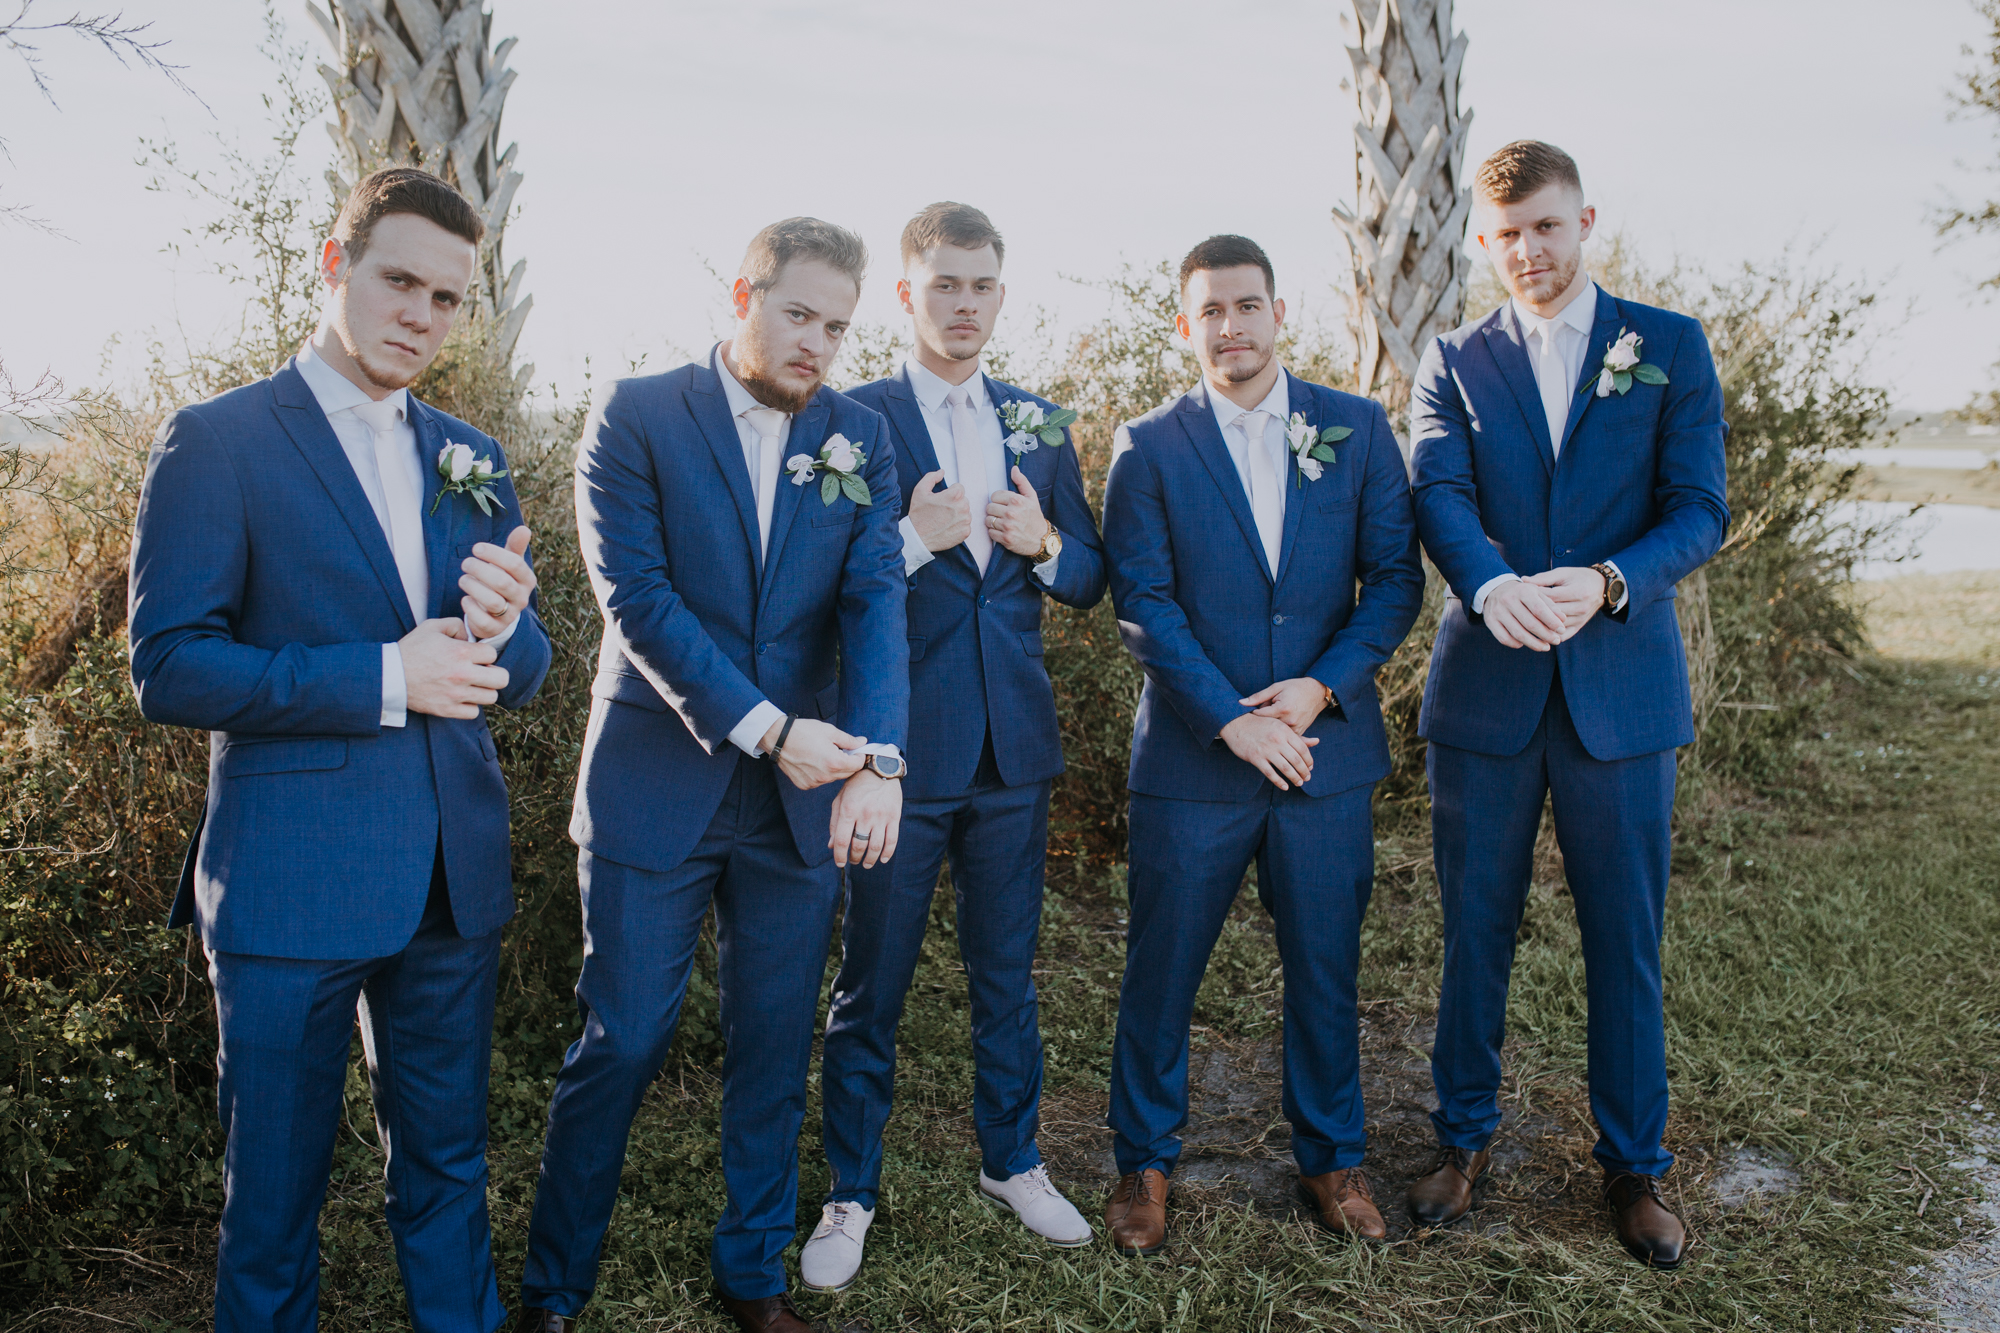 boho bridal party | bridal party portraits | groomsmen portraits | outdoor Florida wedding | sarasota wedding